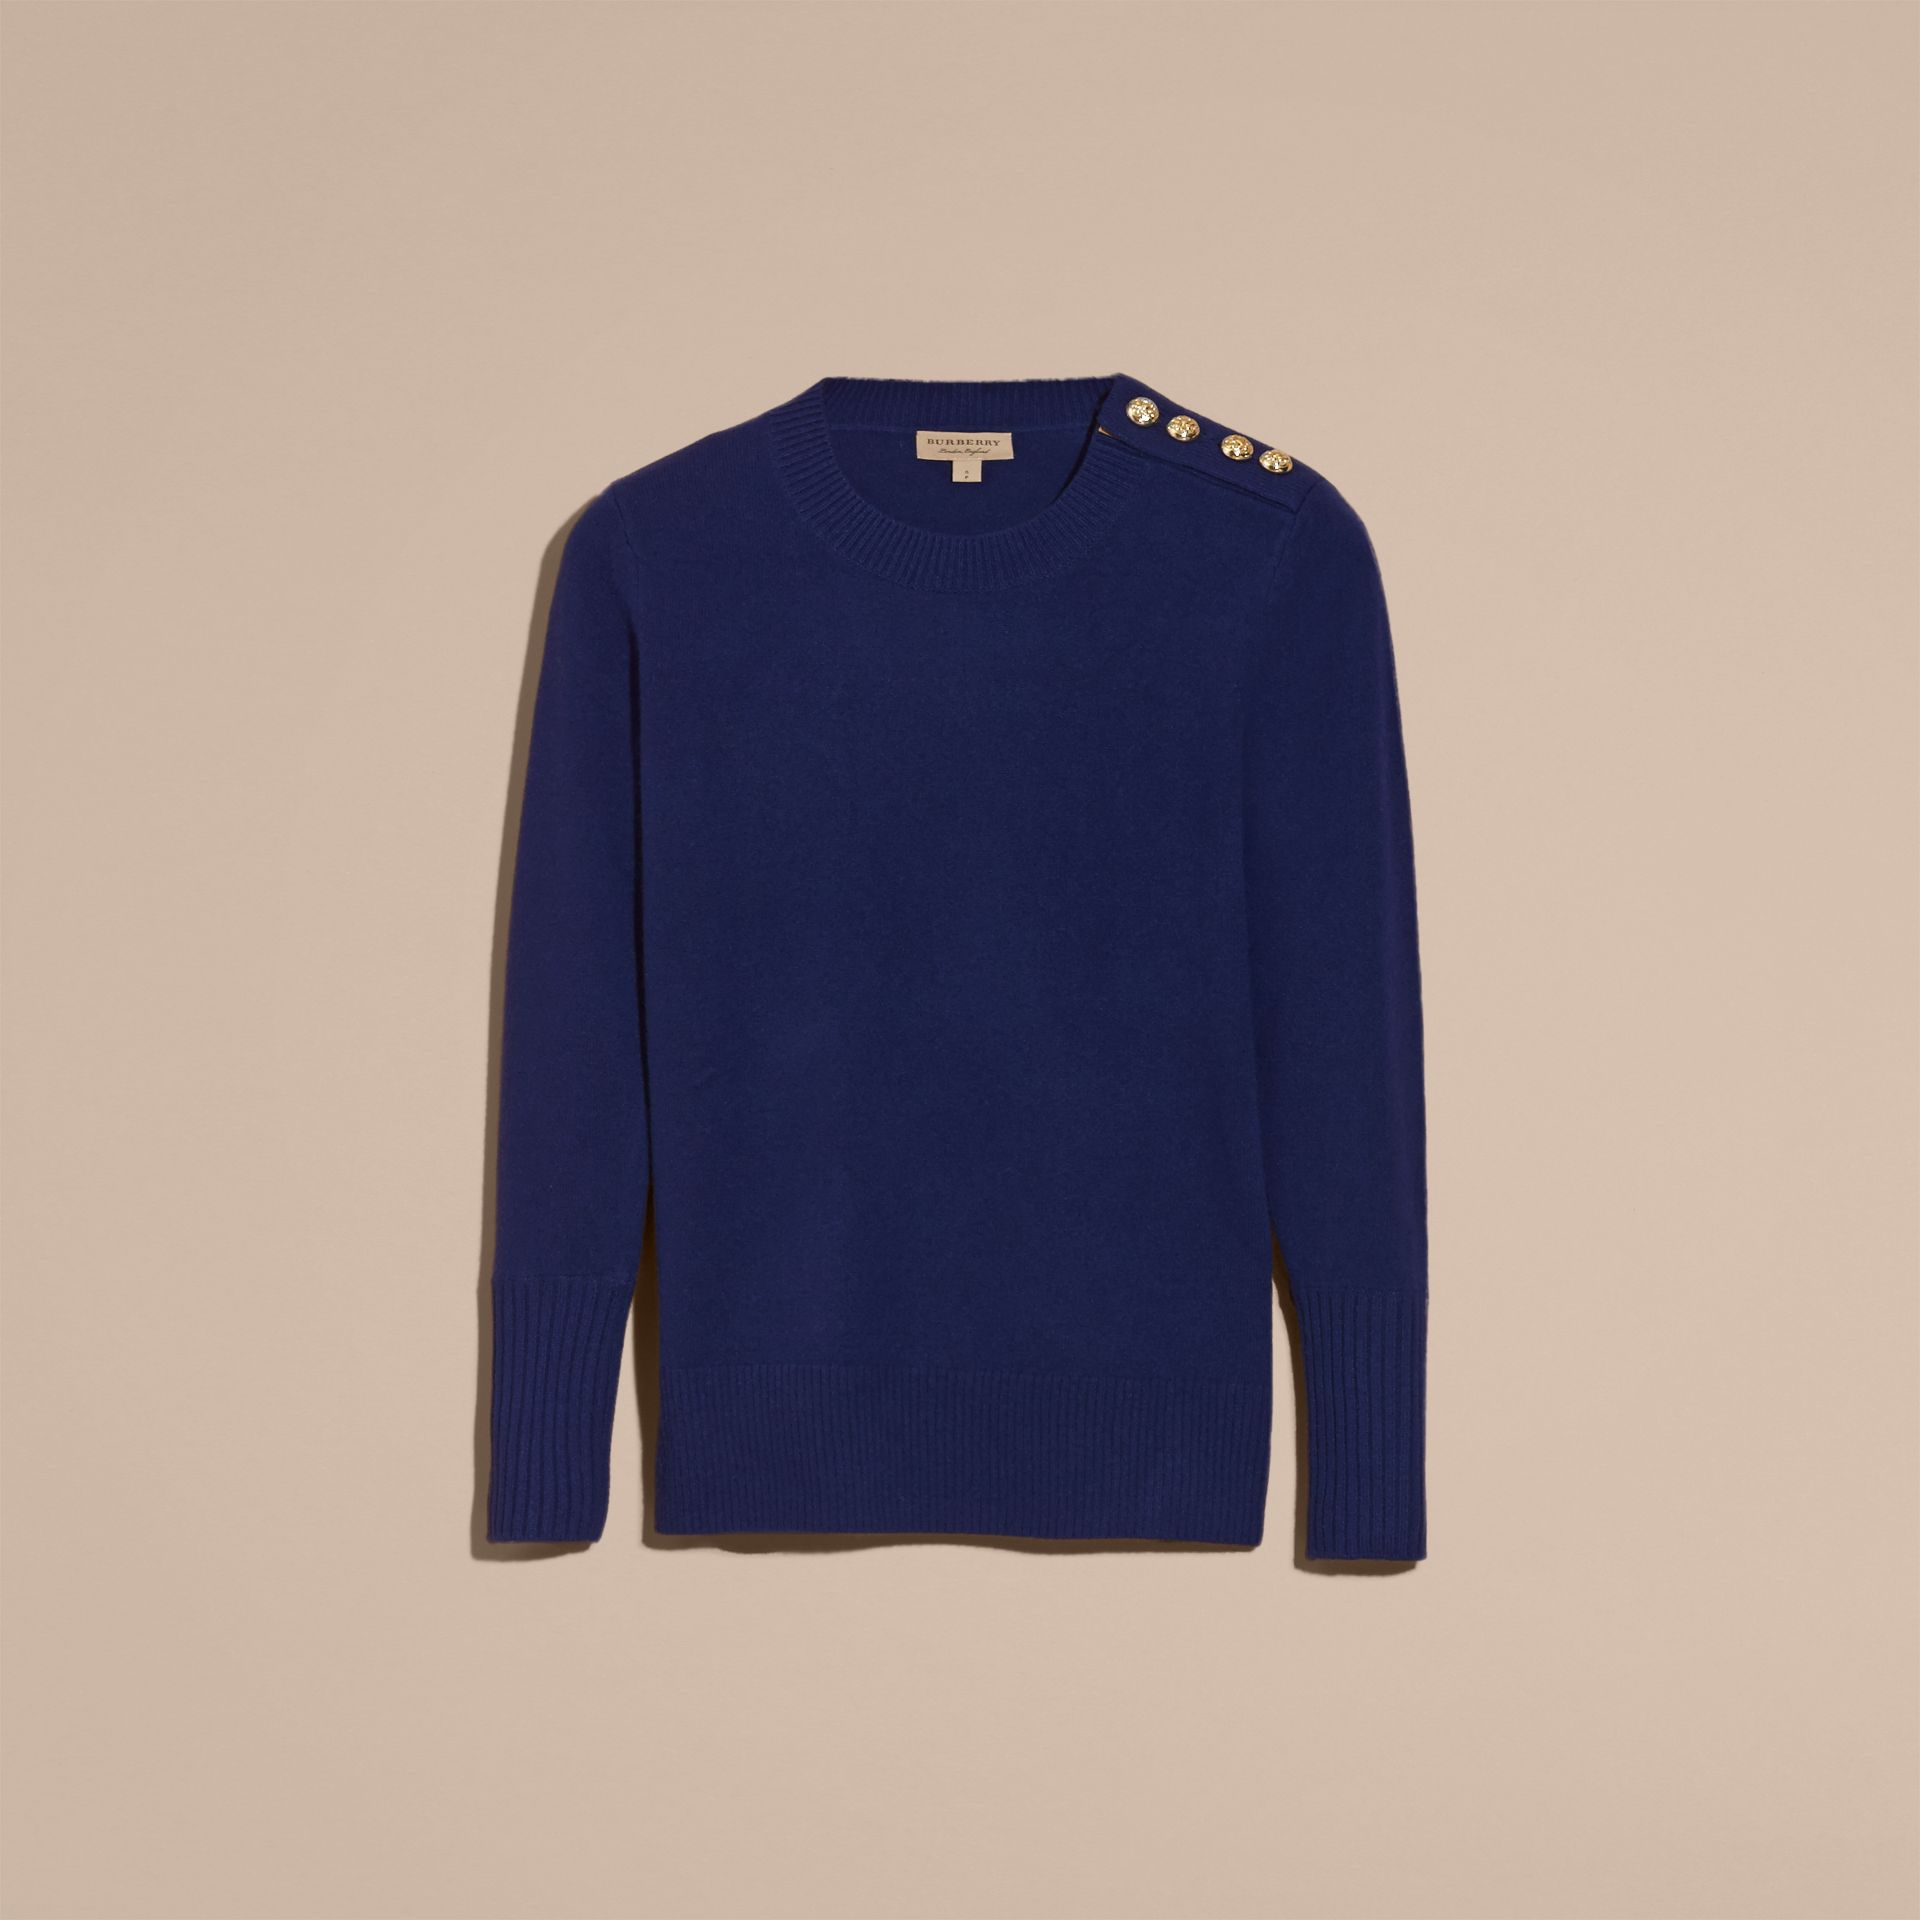 Bright navy Cashmere Sweater with Crested Buttons Bright Navy - gallery image 4